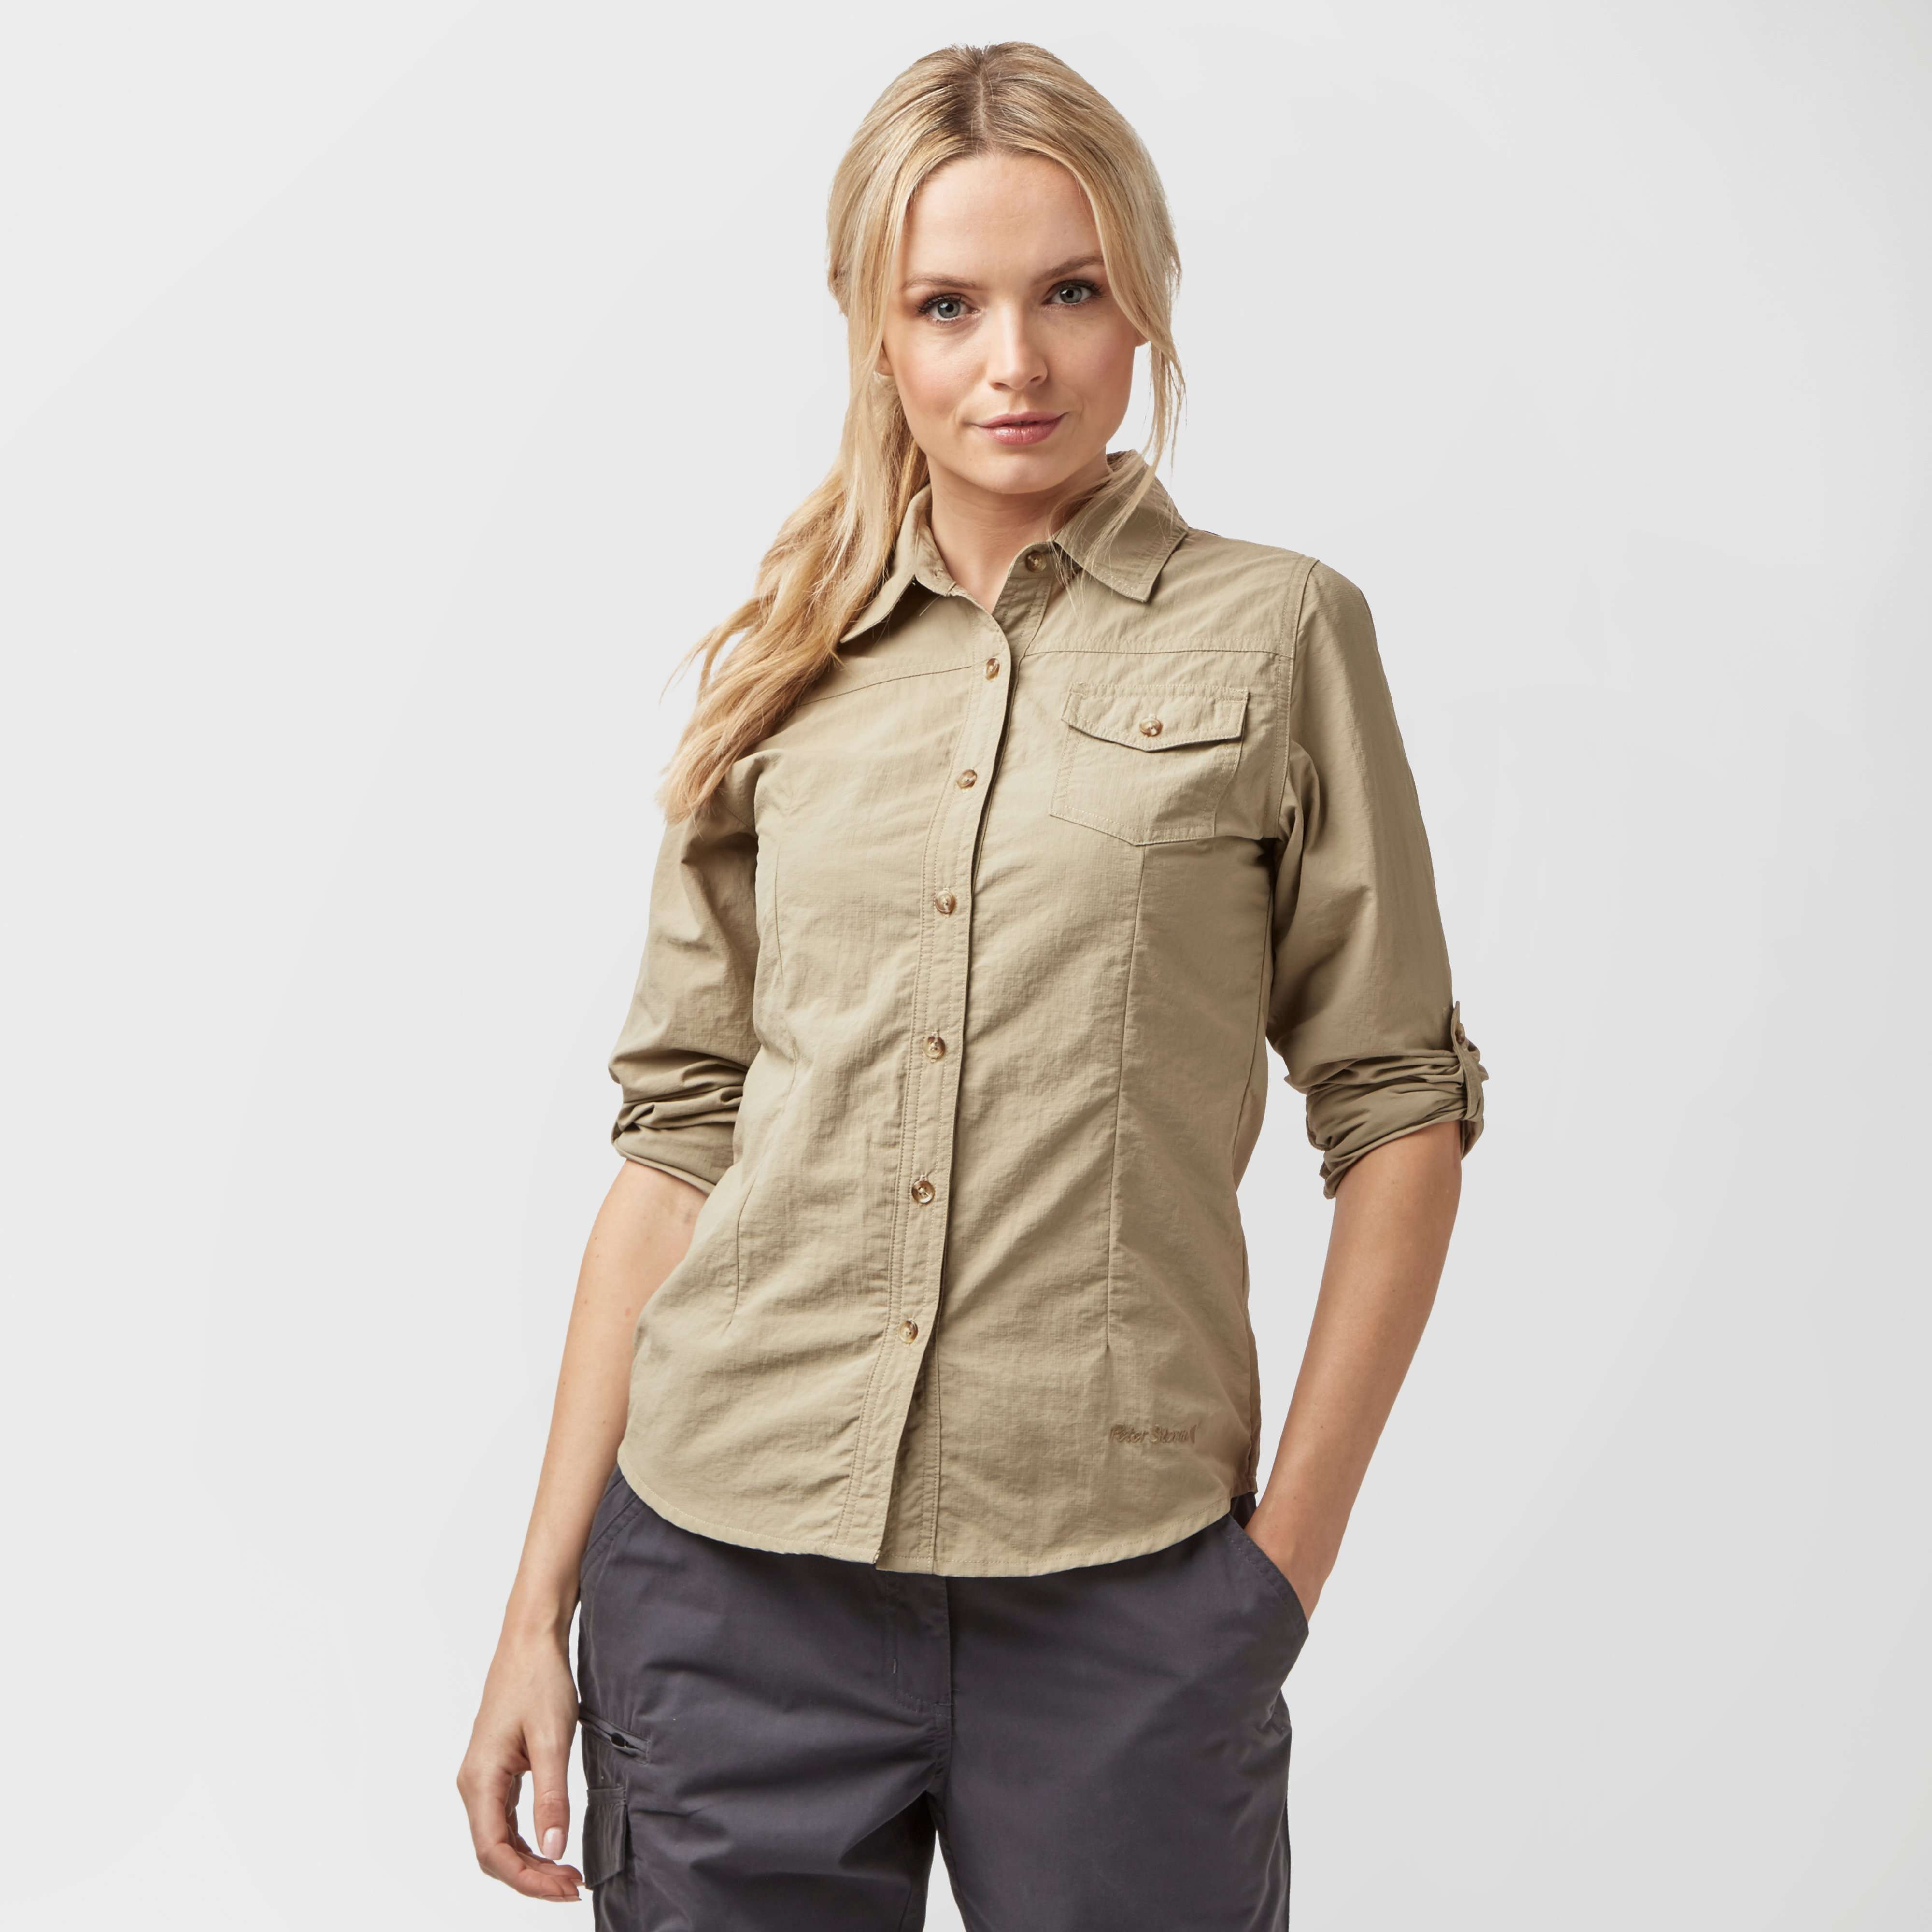 PETER STORM Women's Travel Shirt